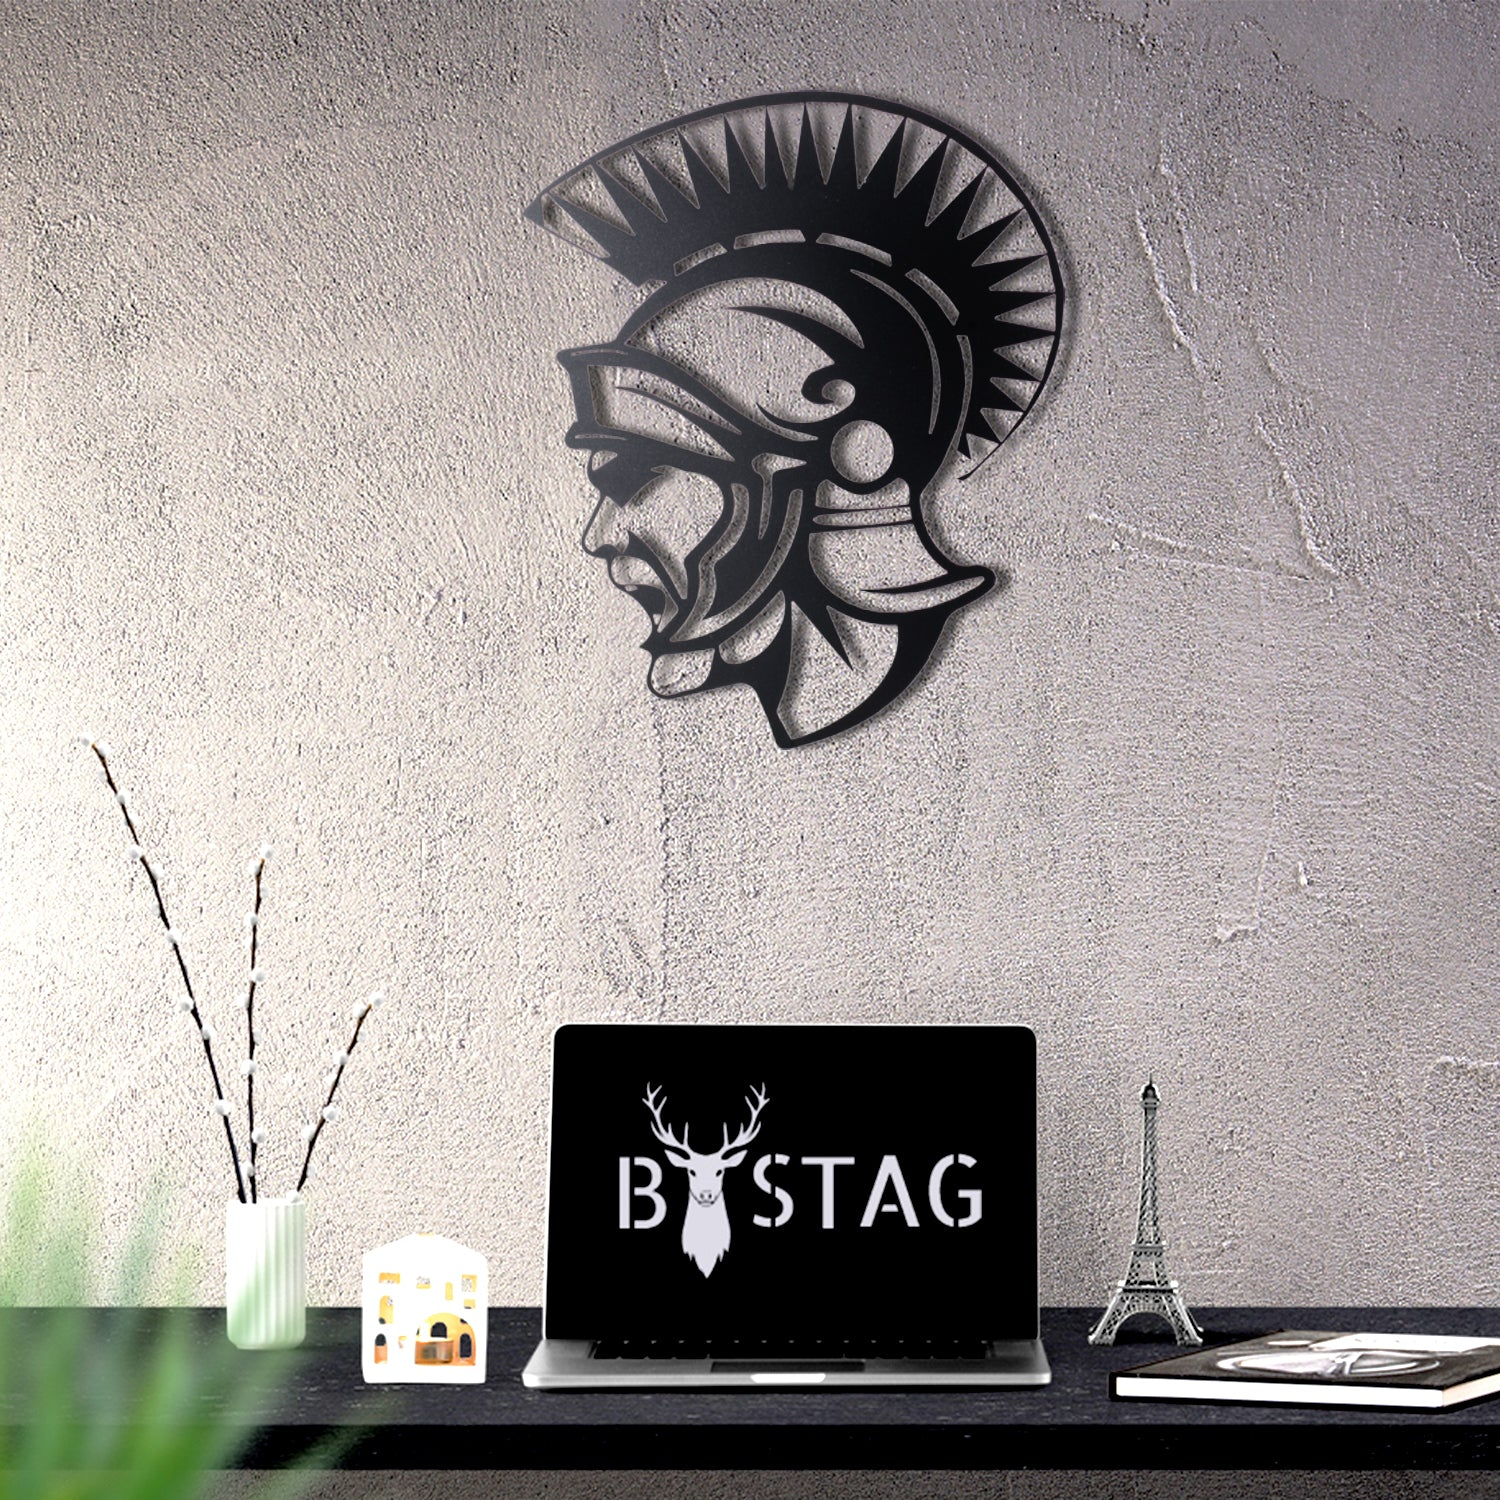 Bystag metal dekoratif duvar aksesuarı soldier- Bystag metal wall art-wall art-wall decor-metal wall decor-soldier-warrior